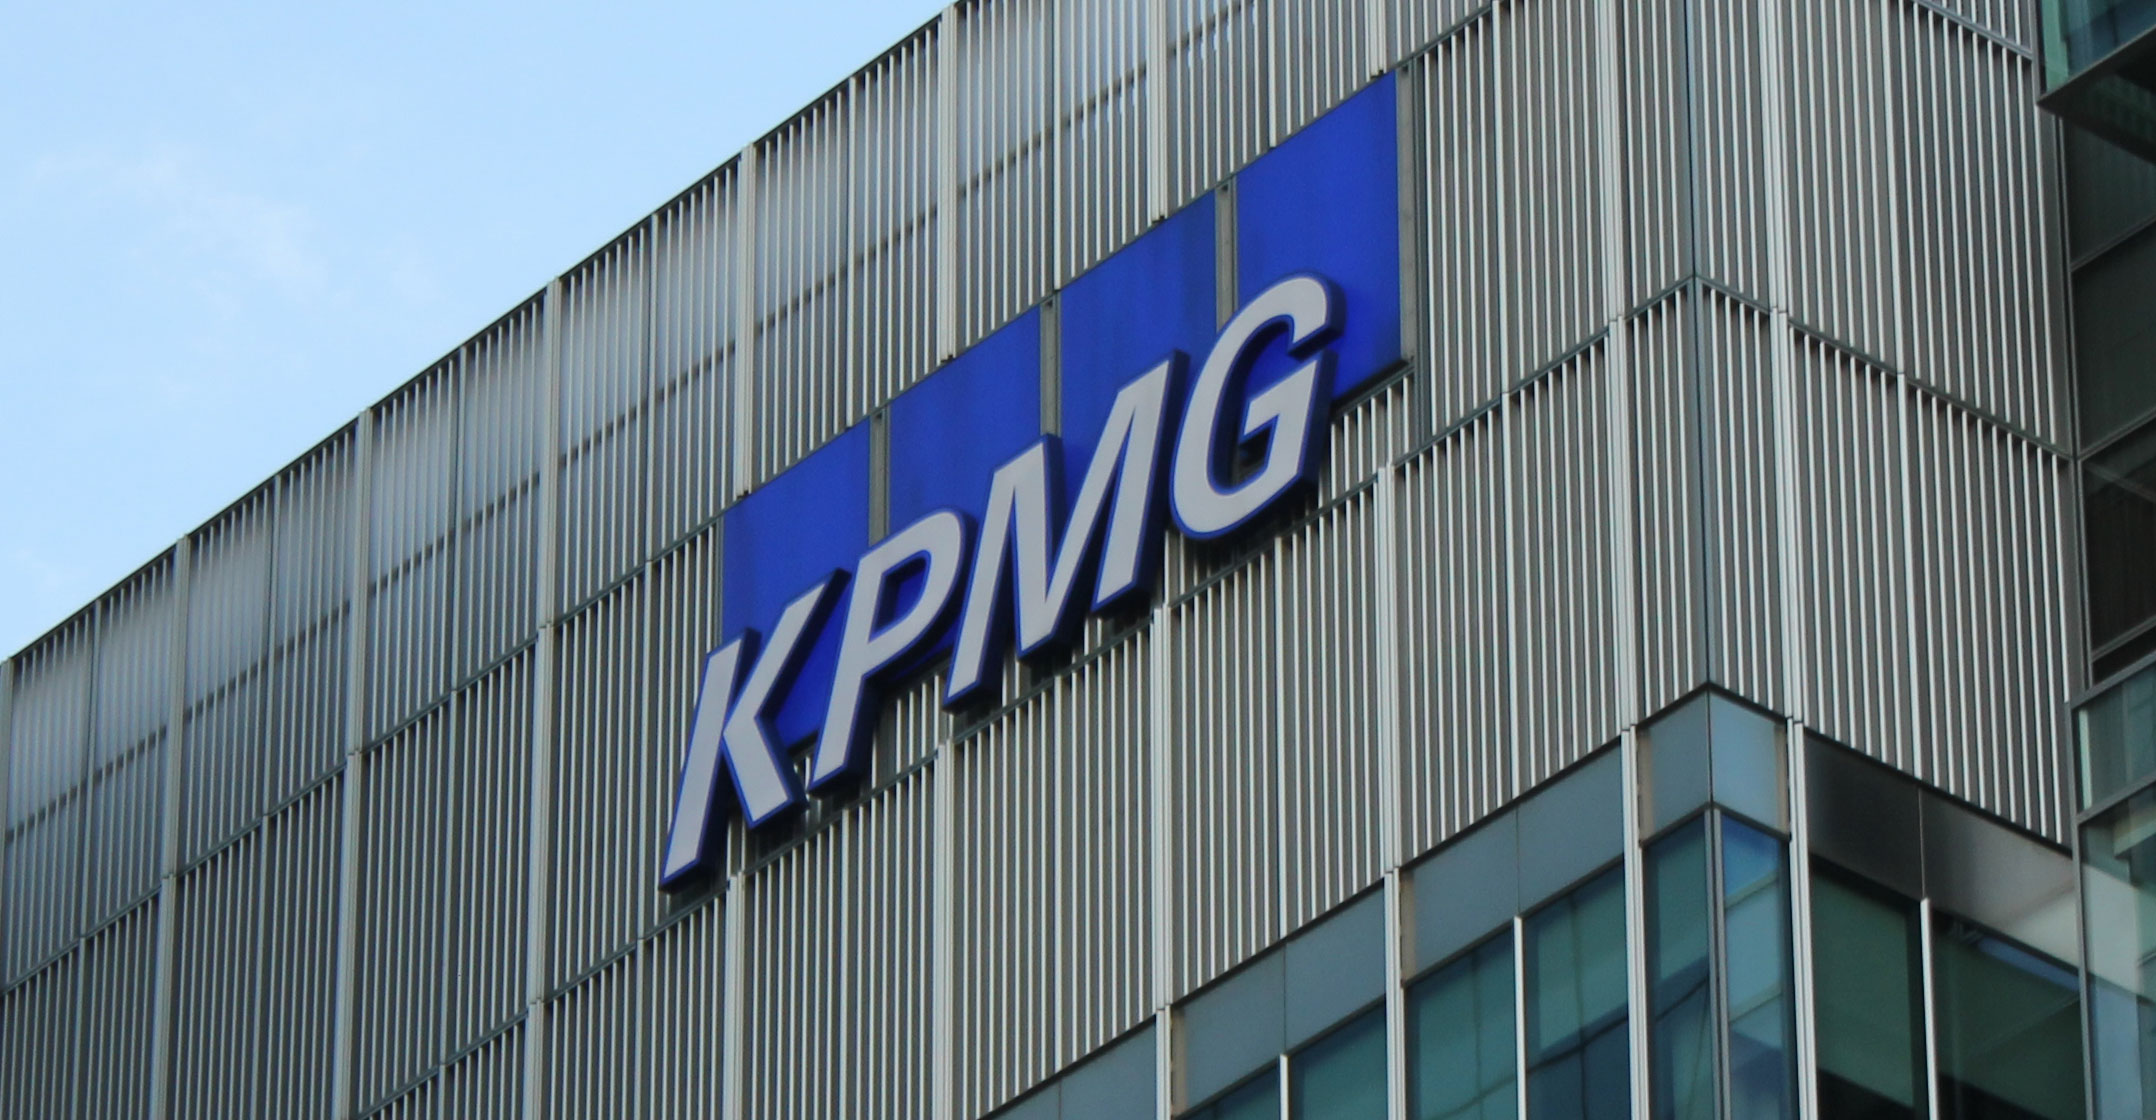 KPMG executives axed over Gupta scandal